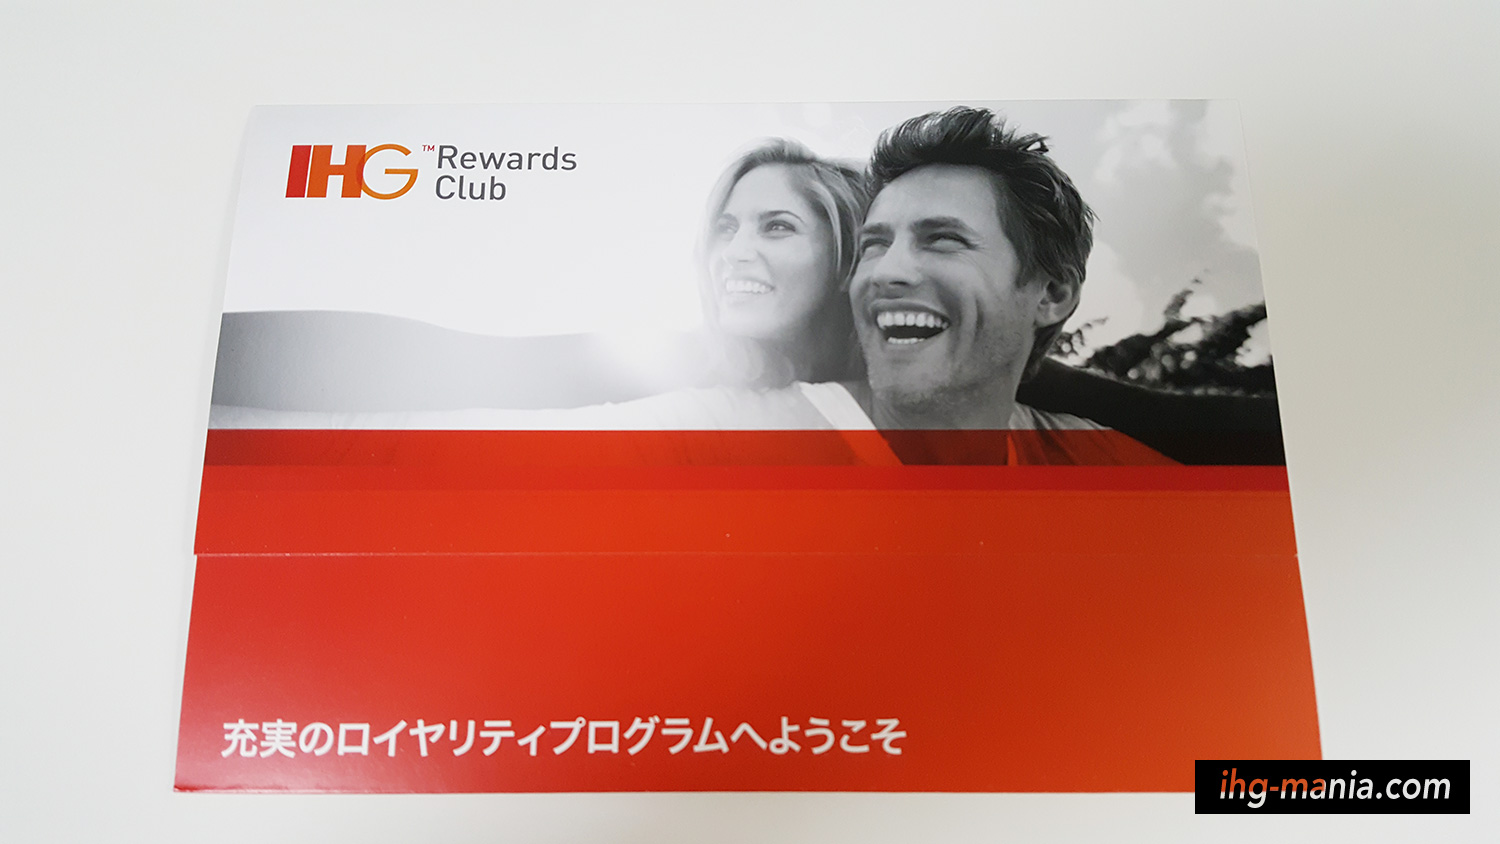 ihg_rewards-club_1